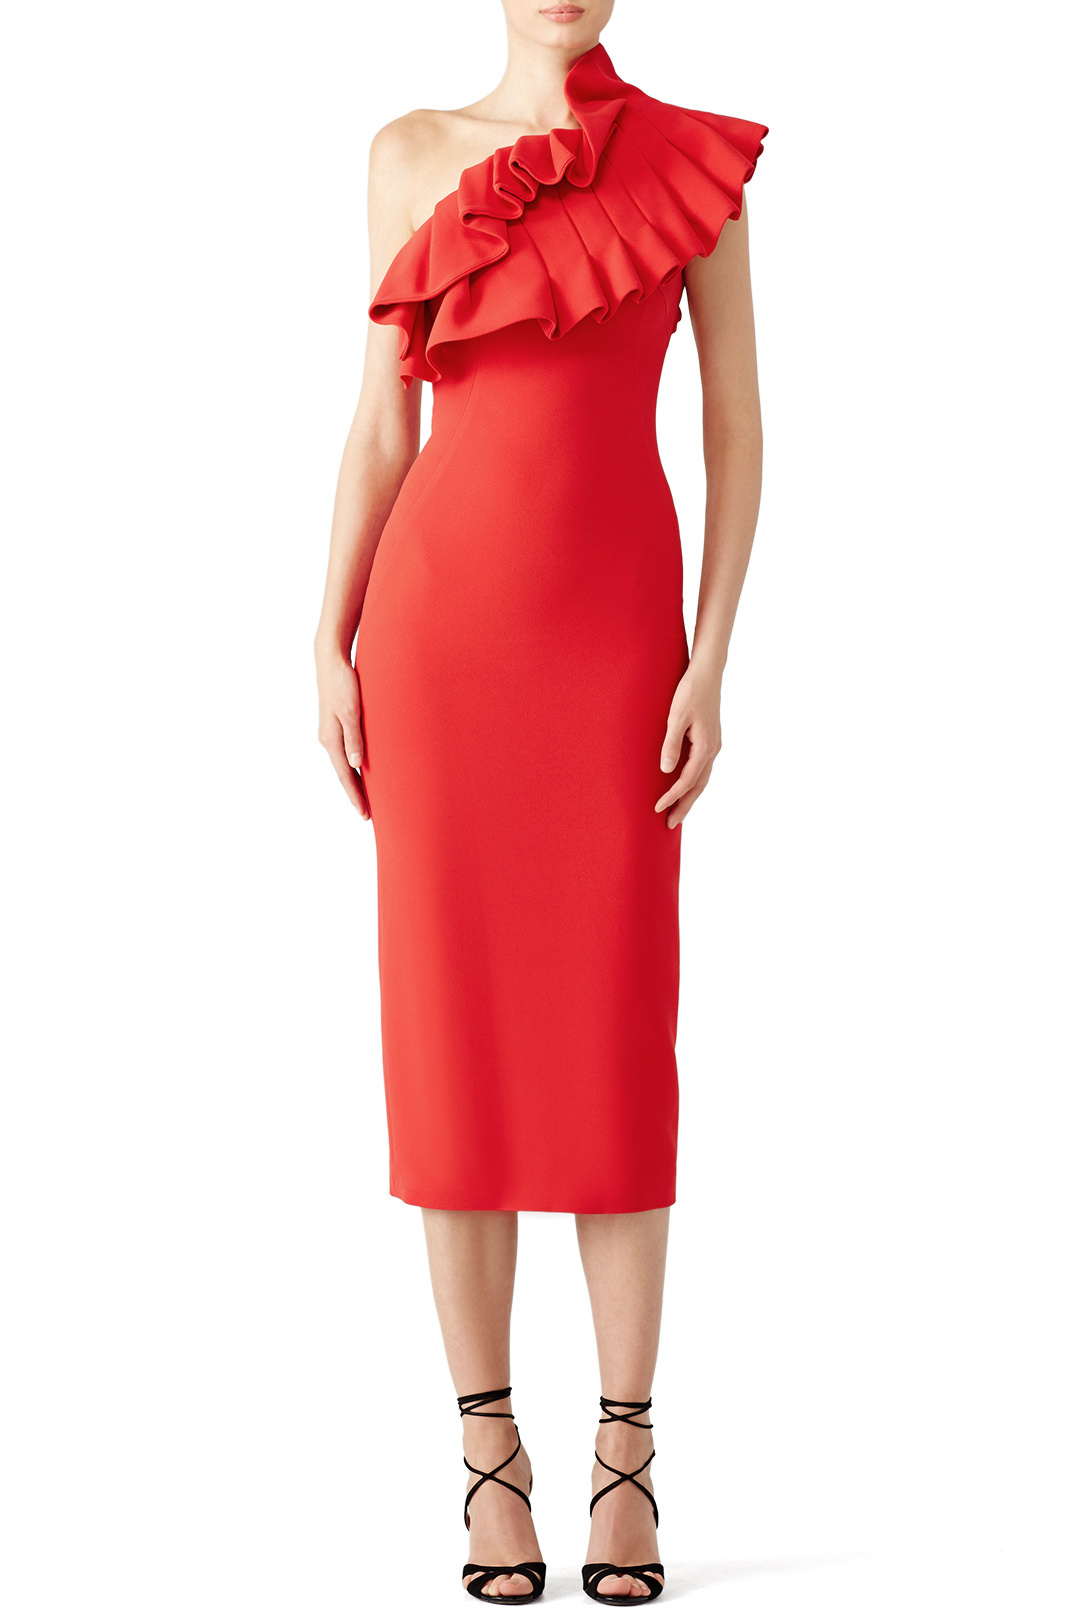 A Rent the Runway dress by Osman